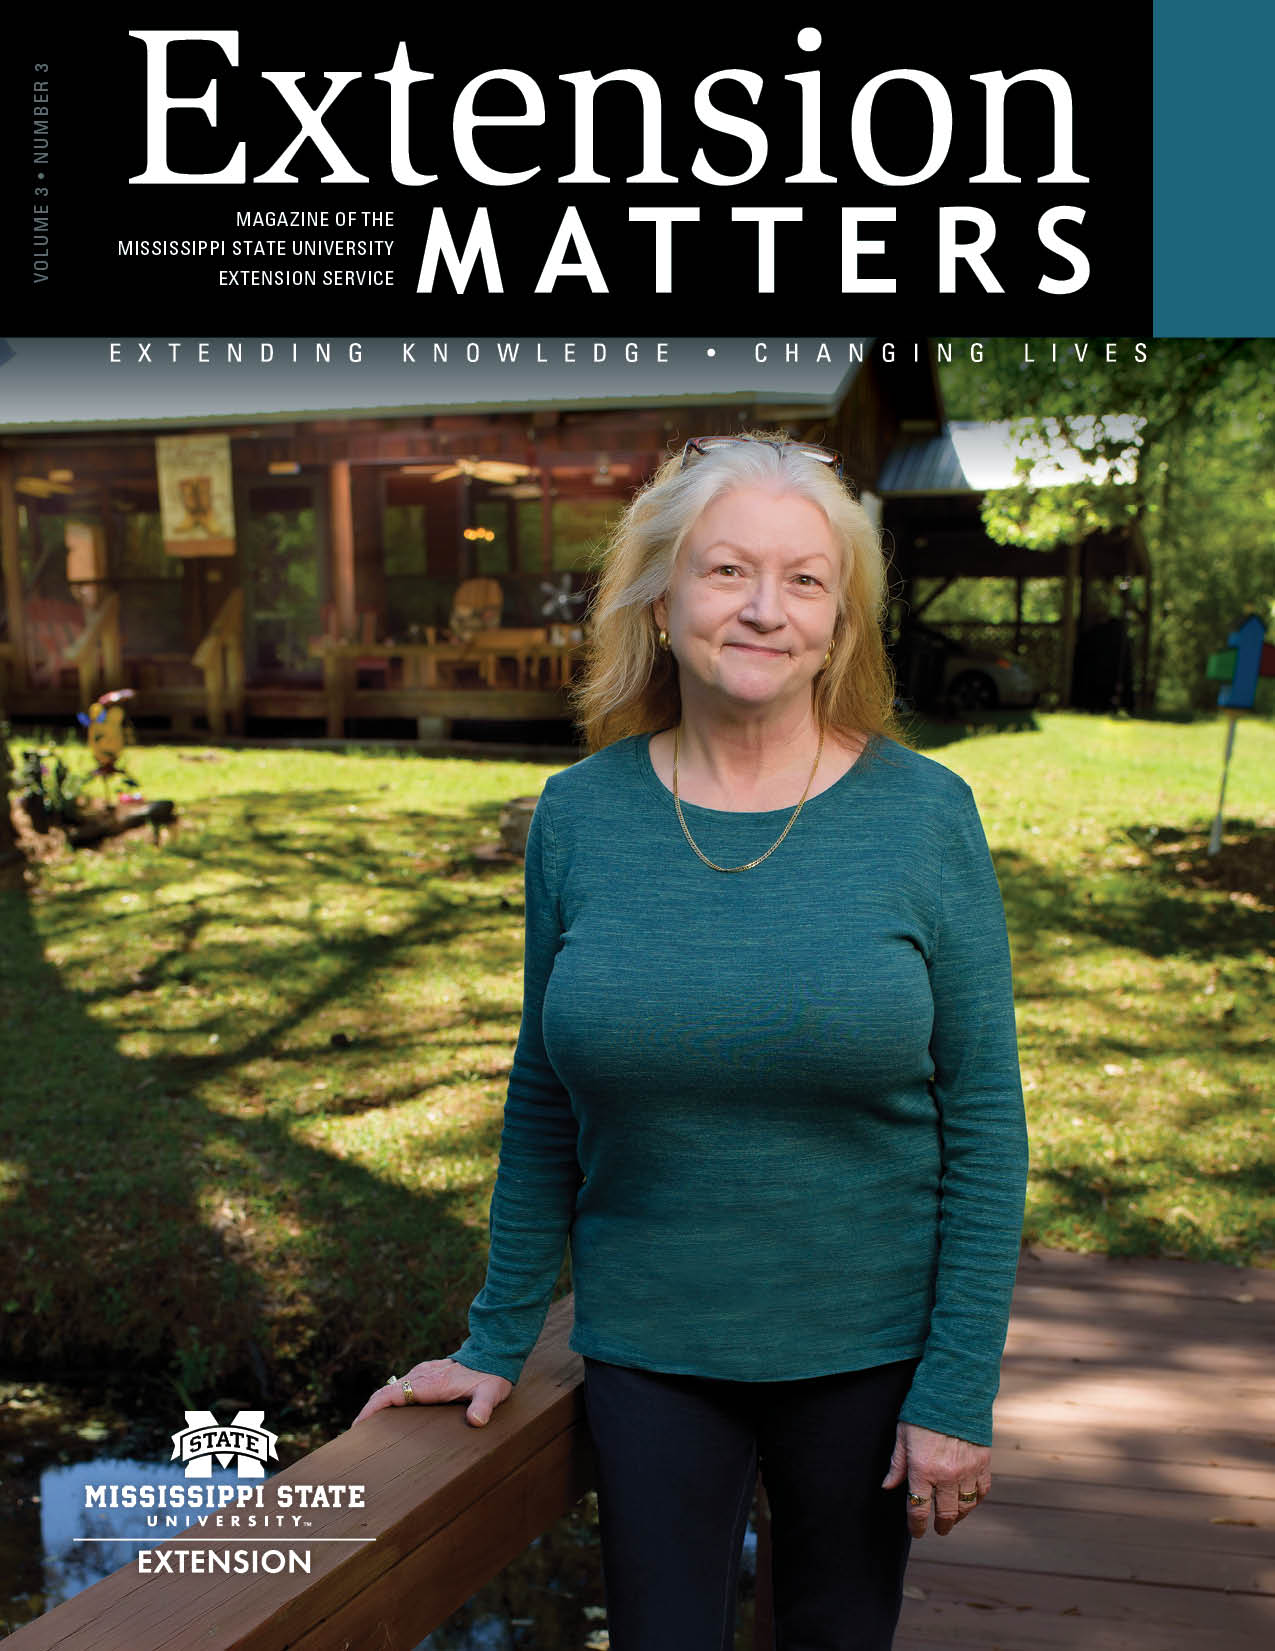 Extension Matters magazine cover showing woman standing in front of home